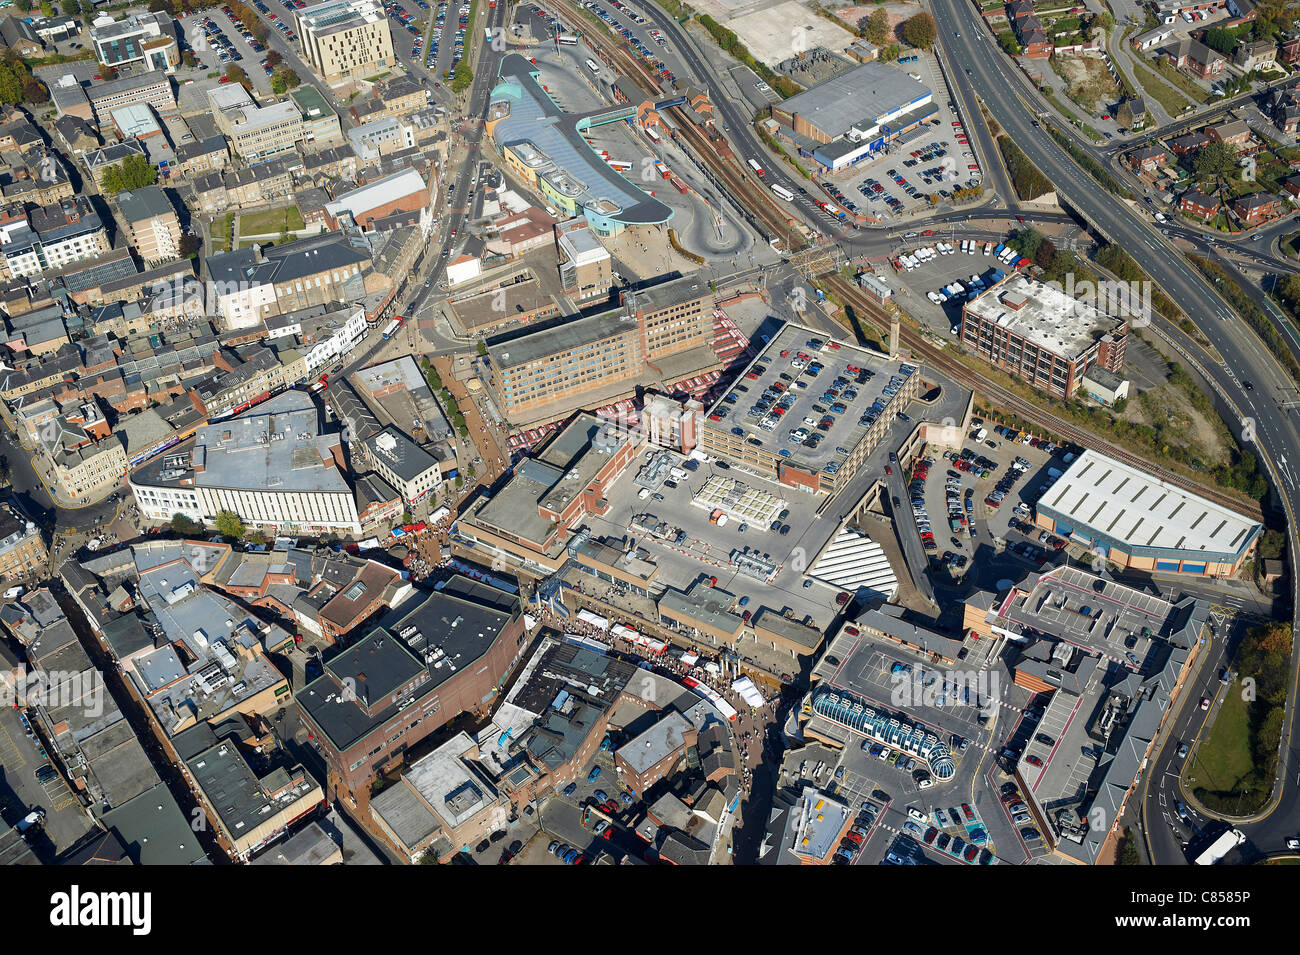 Barnsley Town Centre from the air, South Yorkshire, Northern England - Stock Image